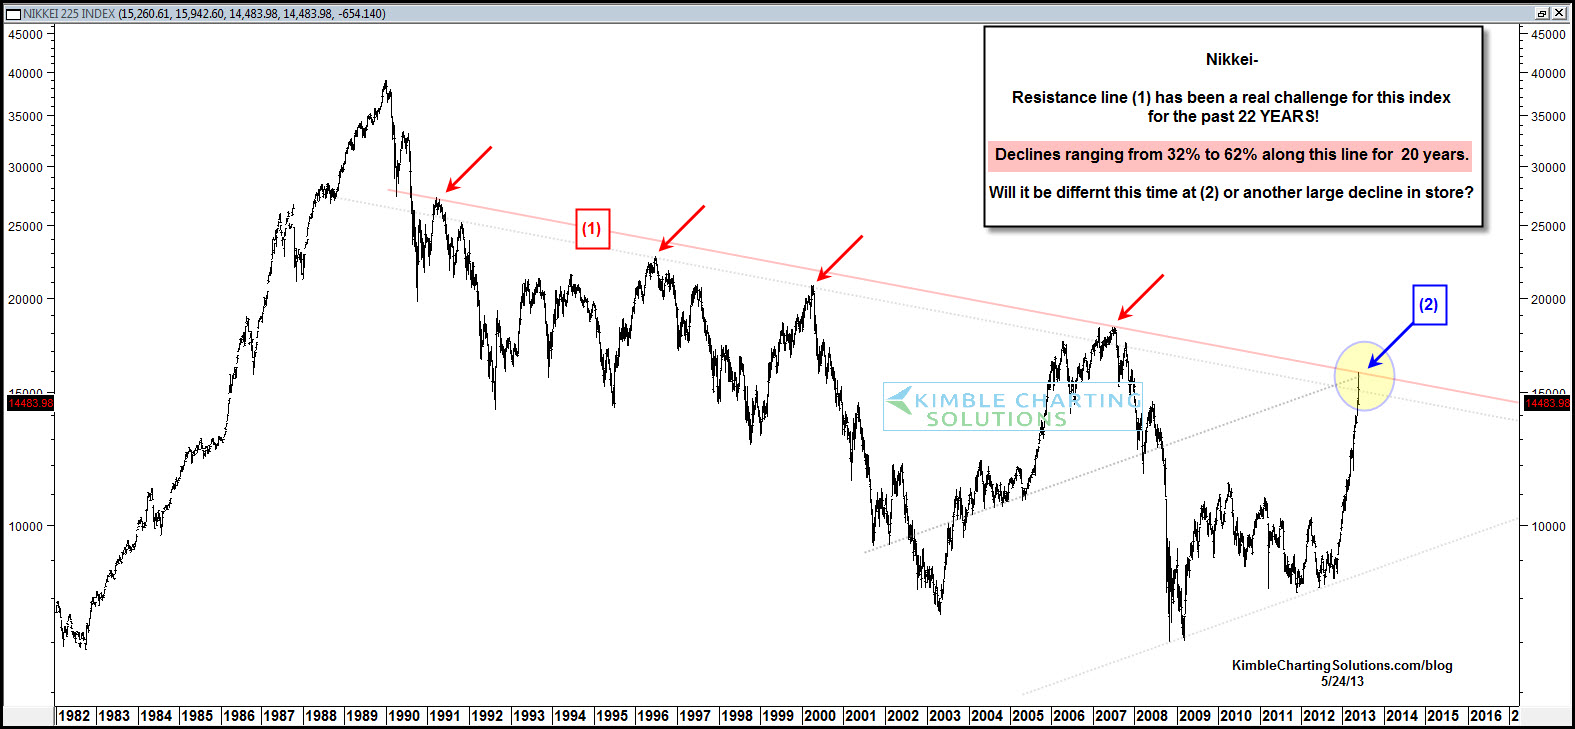 Nikkei downtrend 1982 present the big picture